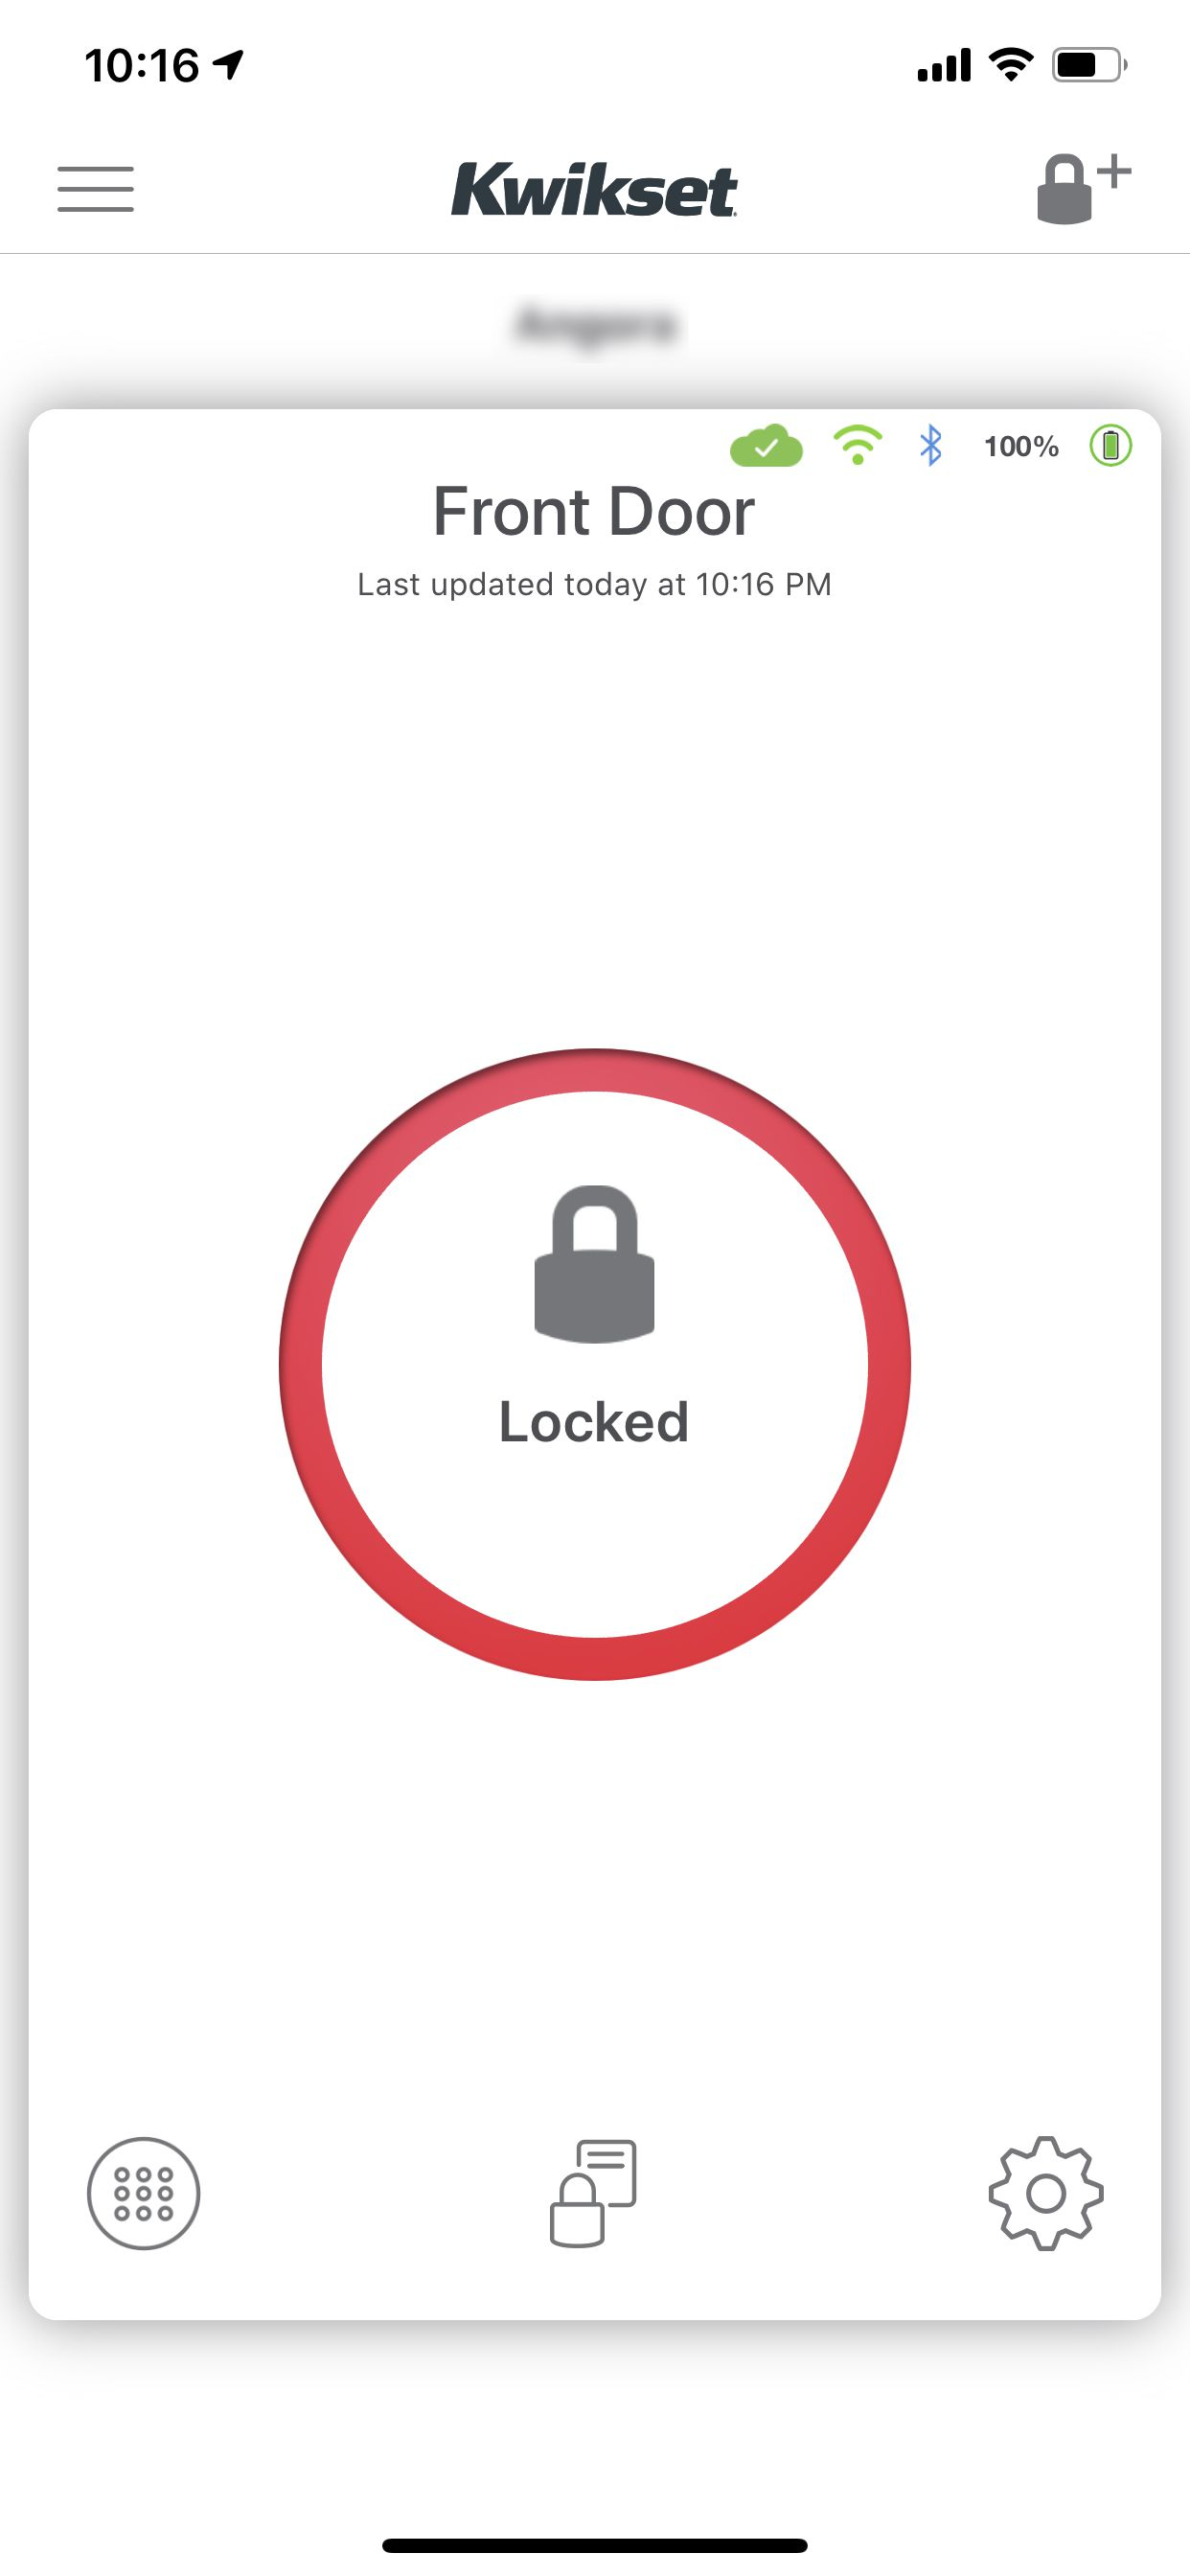 The main screen of the Kwikset app lets you see the lock status and lock or unlock the door.